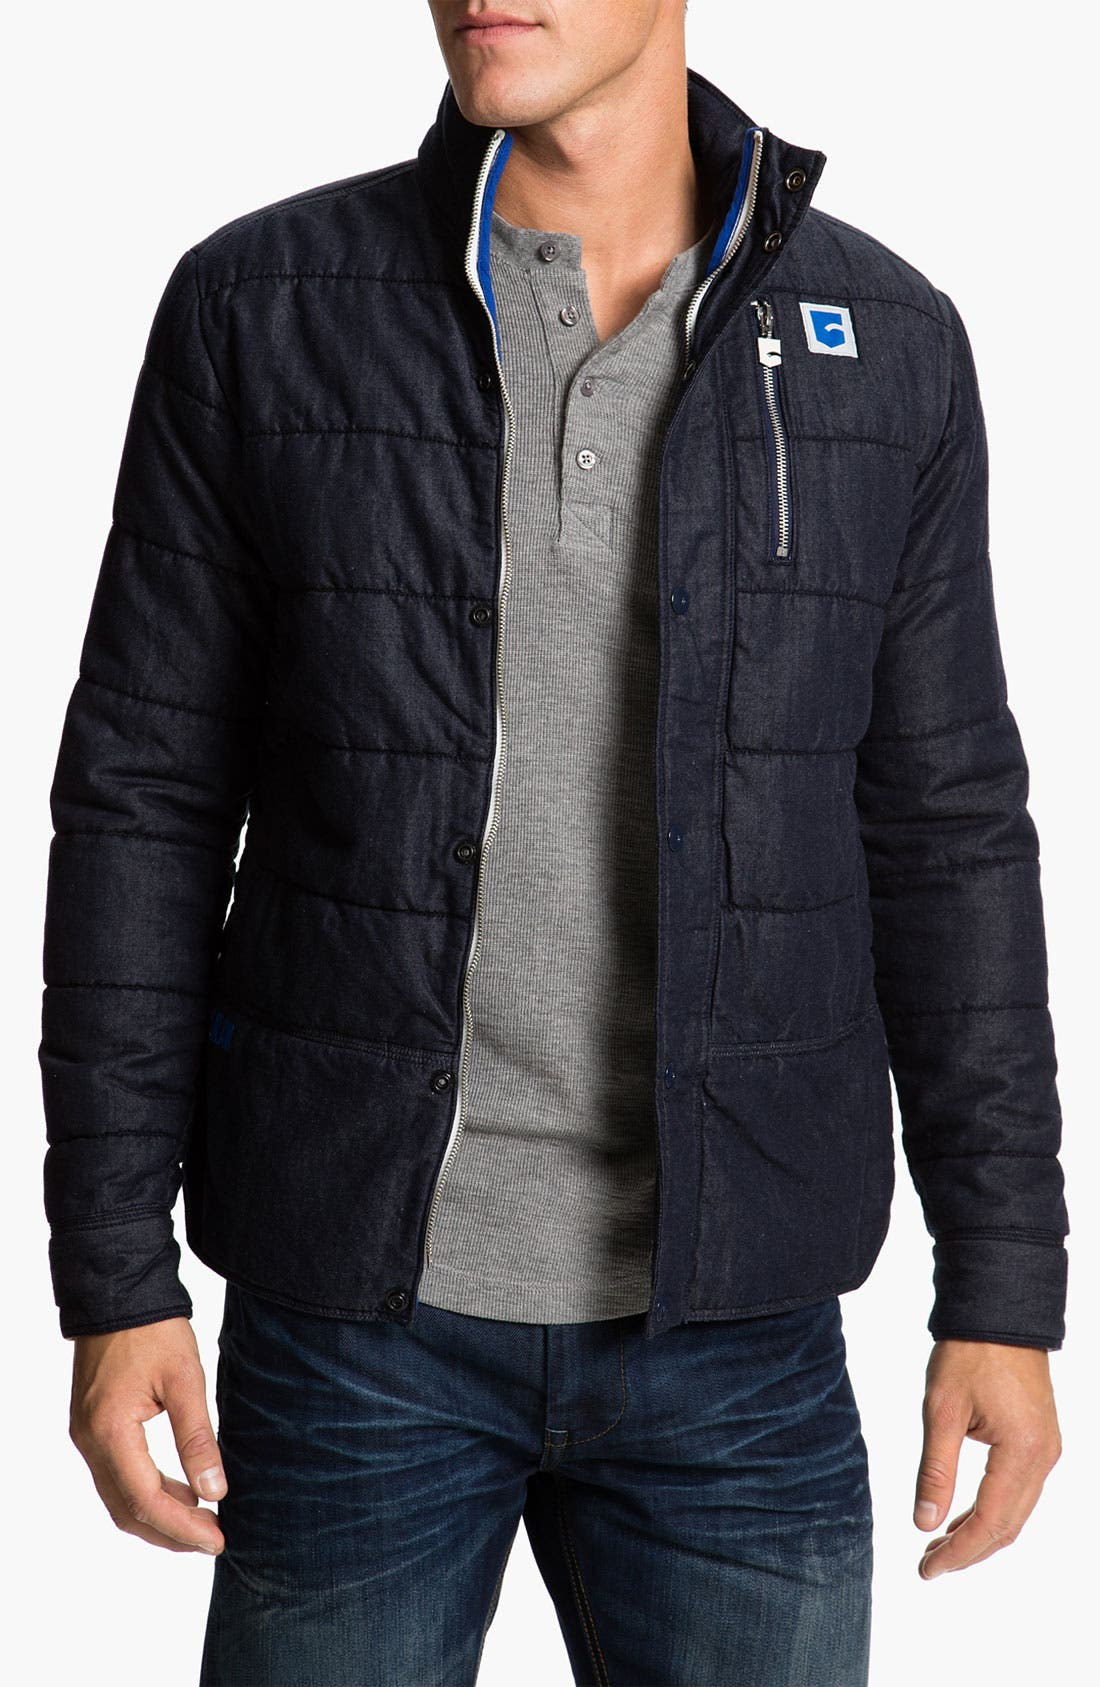 Main Image - G-Star Raw 'Park' Quilted Jacket